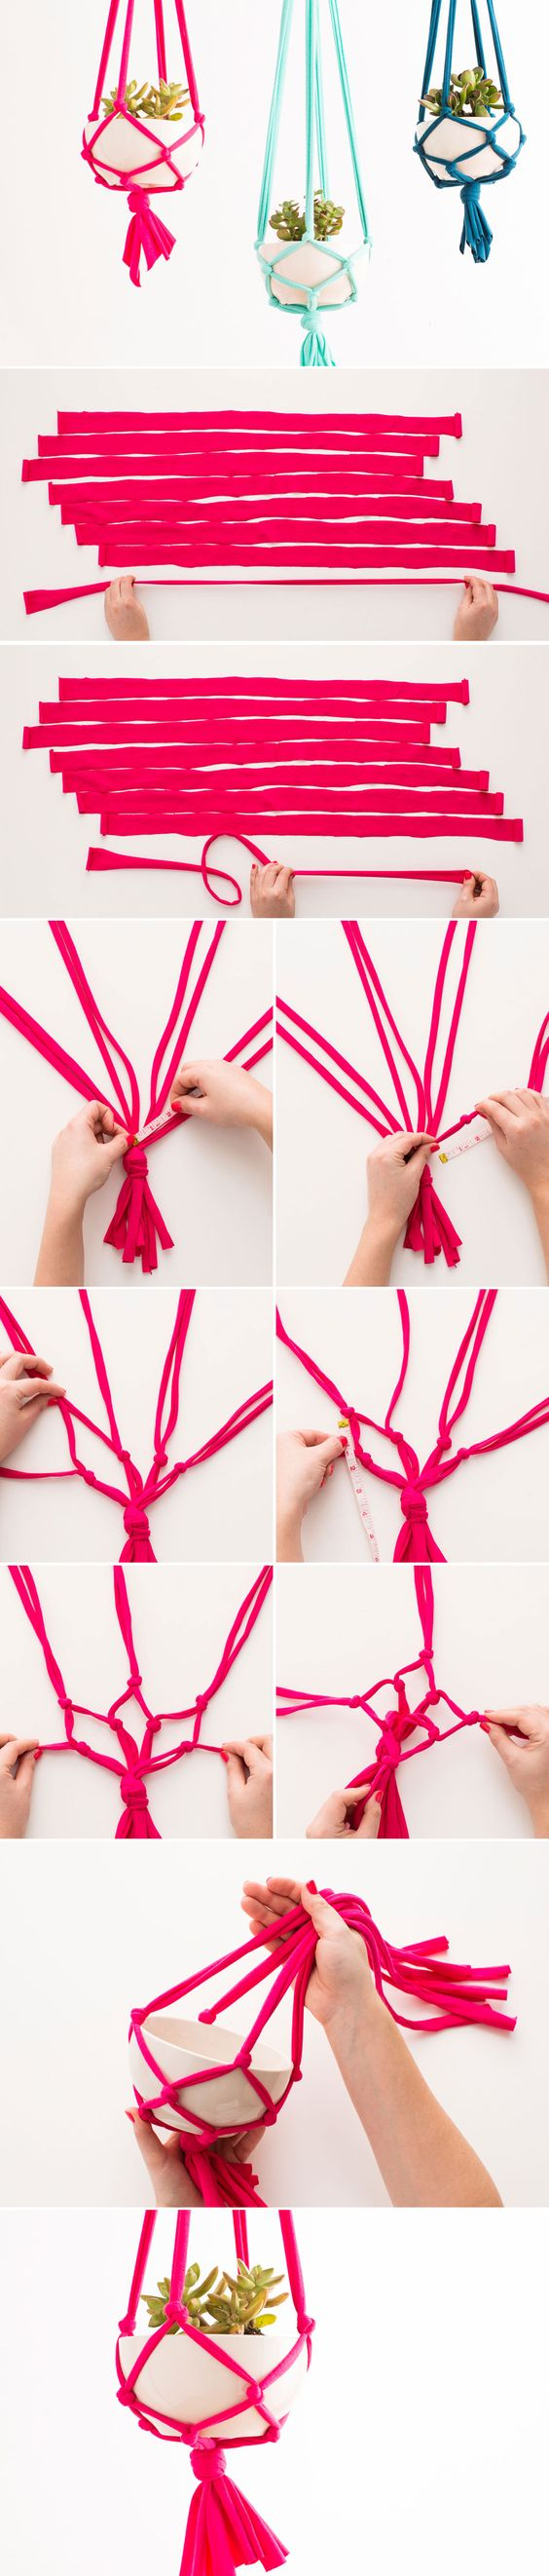 hanger-plants-appendi-piante-da-soffitto-in-macrame-da-fare-a-mano-macrame-hanging-planters-easy-in-30-minutes-diy